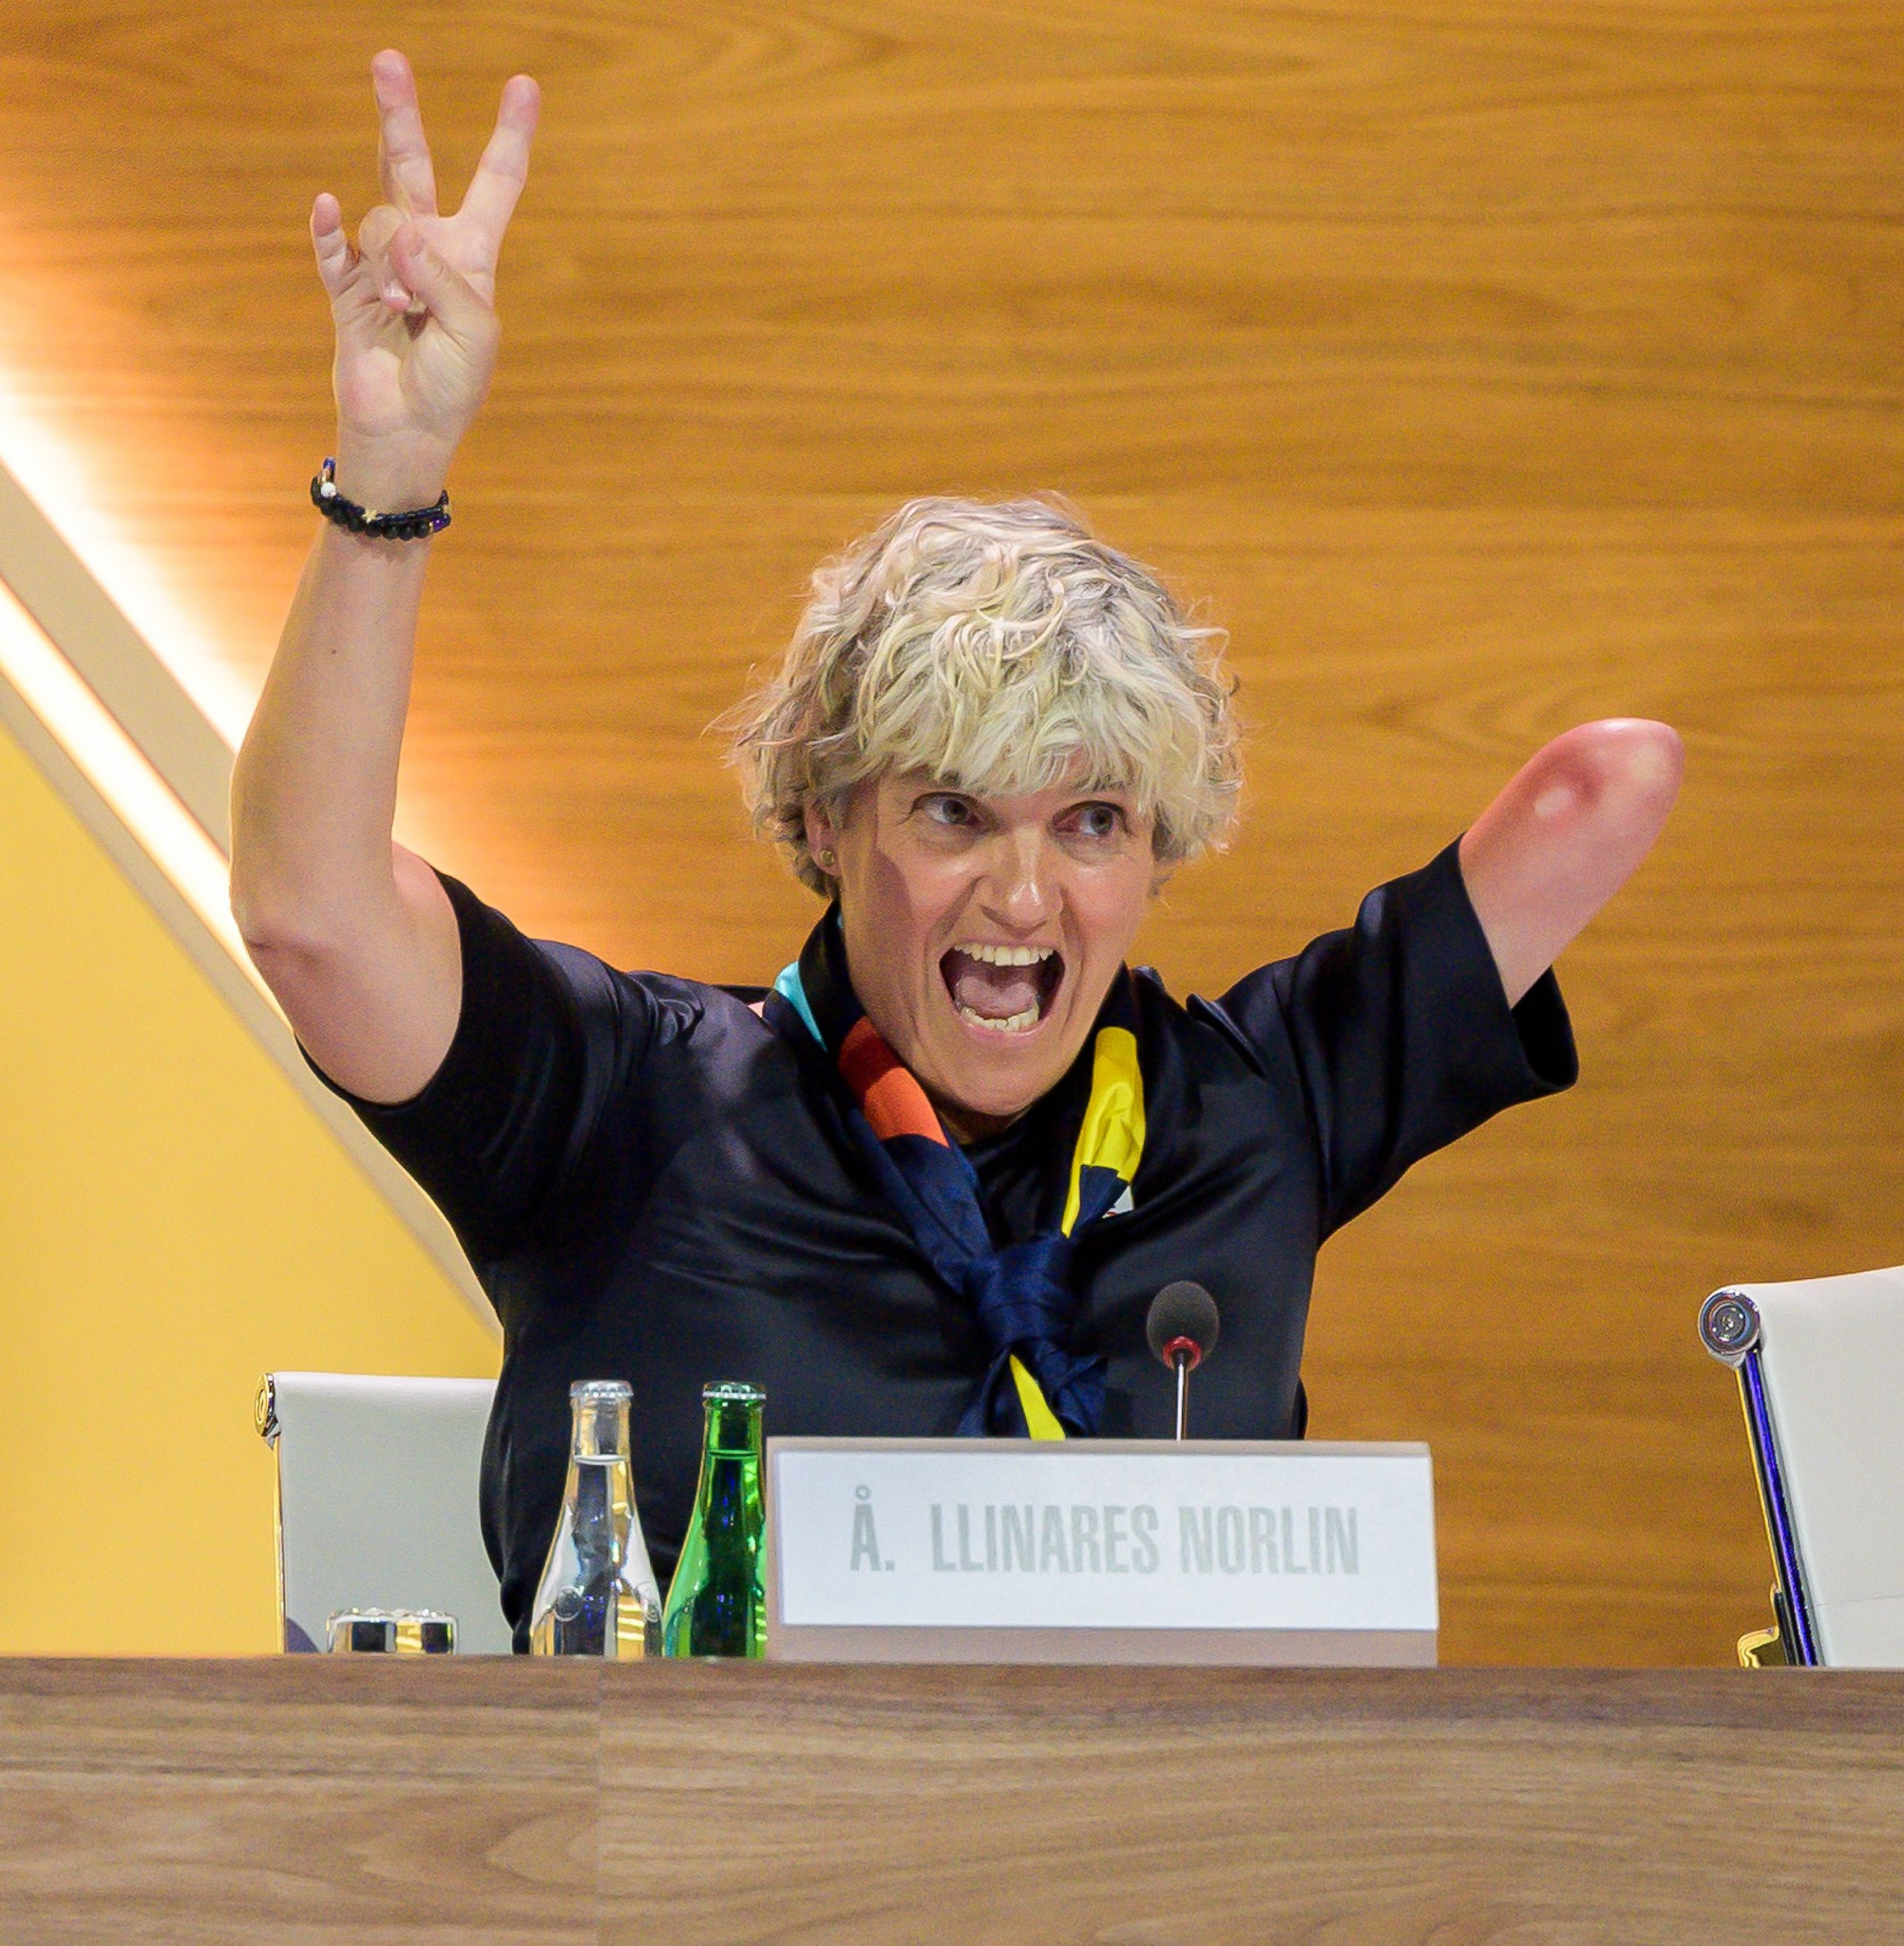 Norlin re-elected as Swedish Paralympic Committee President